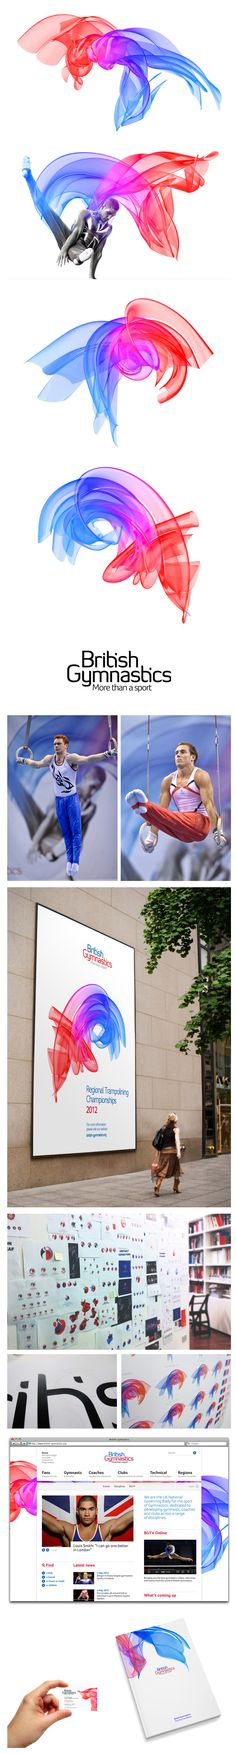 Not a fan of the type but interesting campaign. British Gymnastic ID by BEAR London